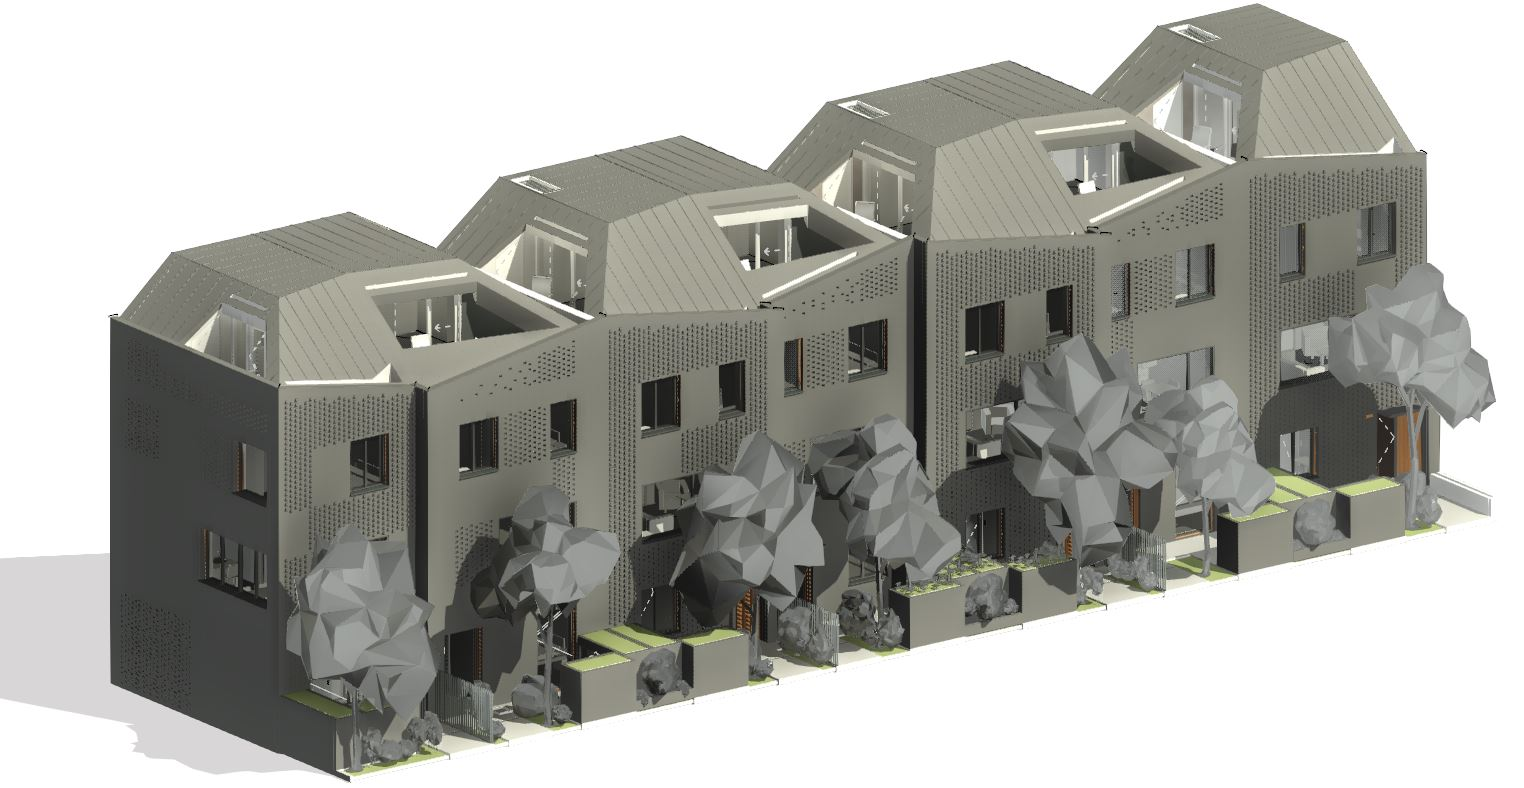 A building with cladding modeled in Revit